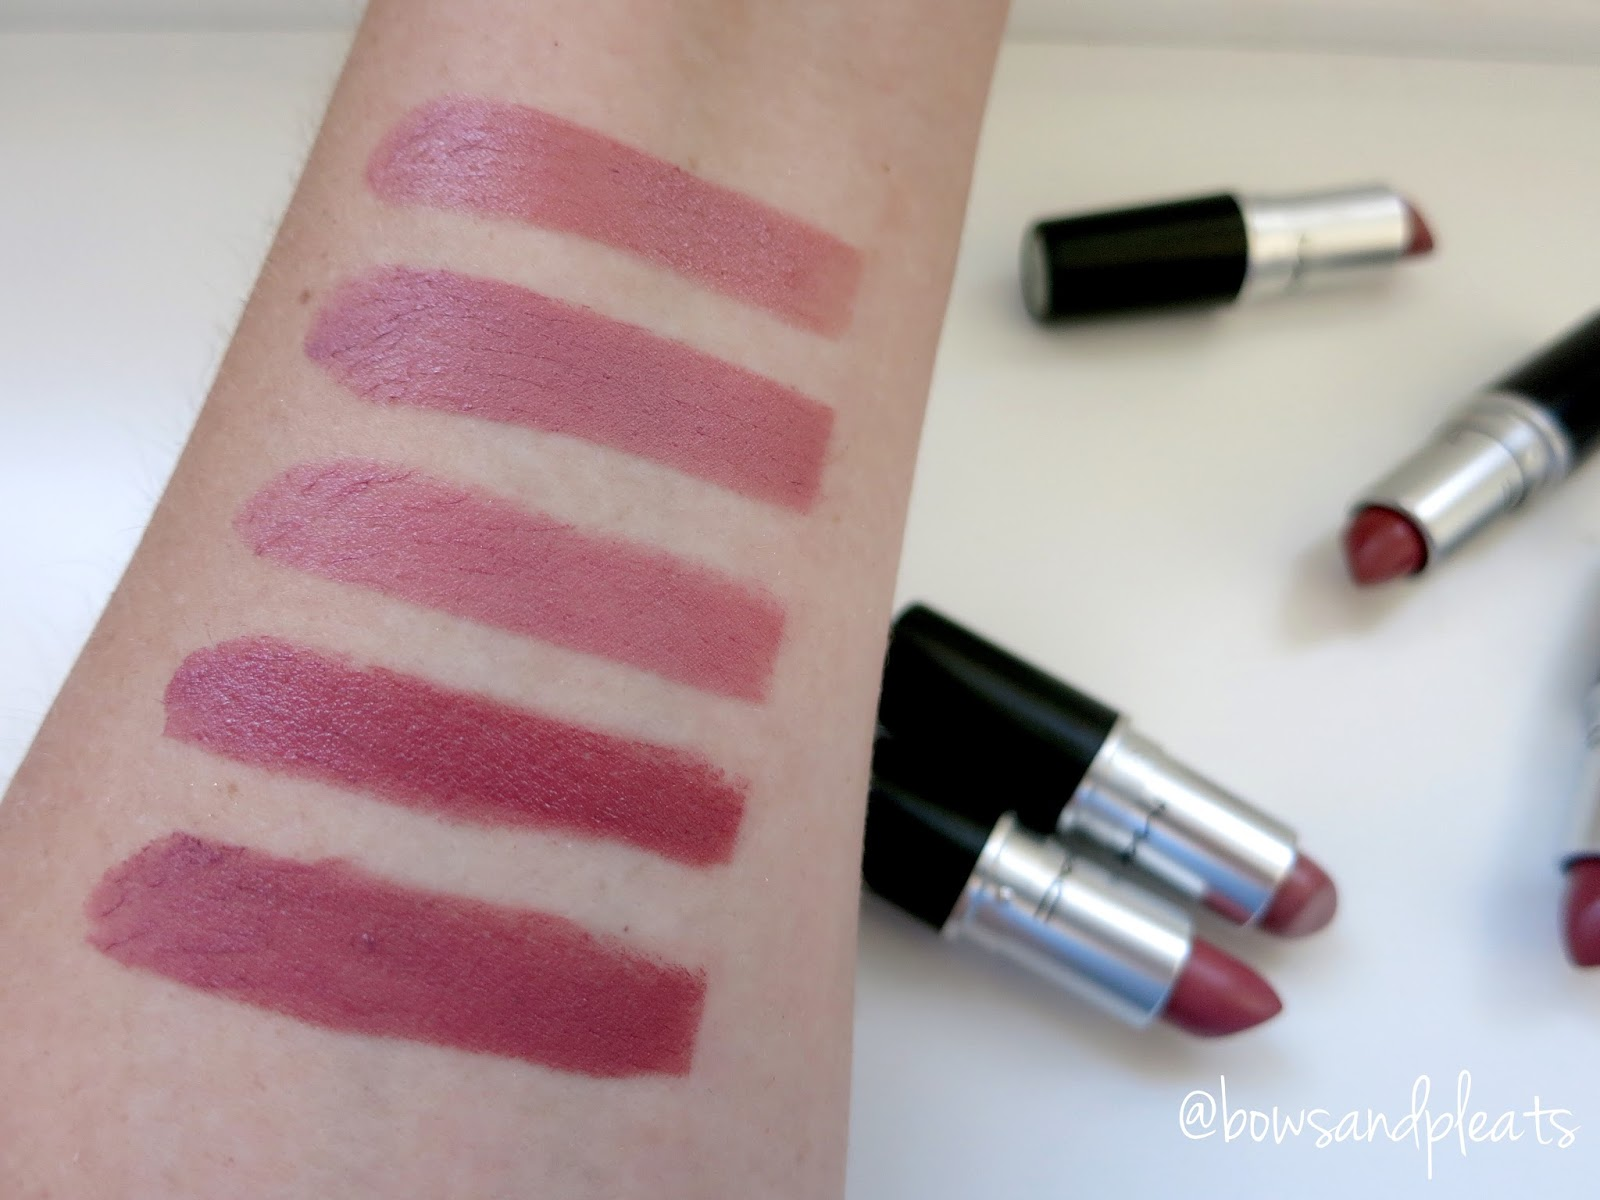 Mac Cosmetics Lipstick Swatches in Modesty, Faux, Brave, Fast Play and Twig